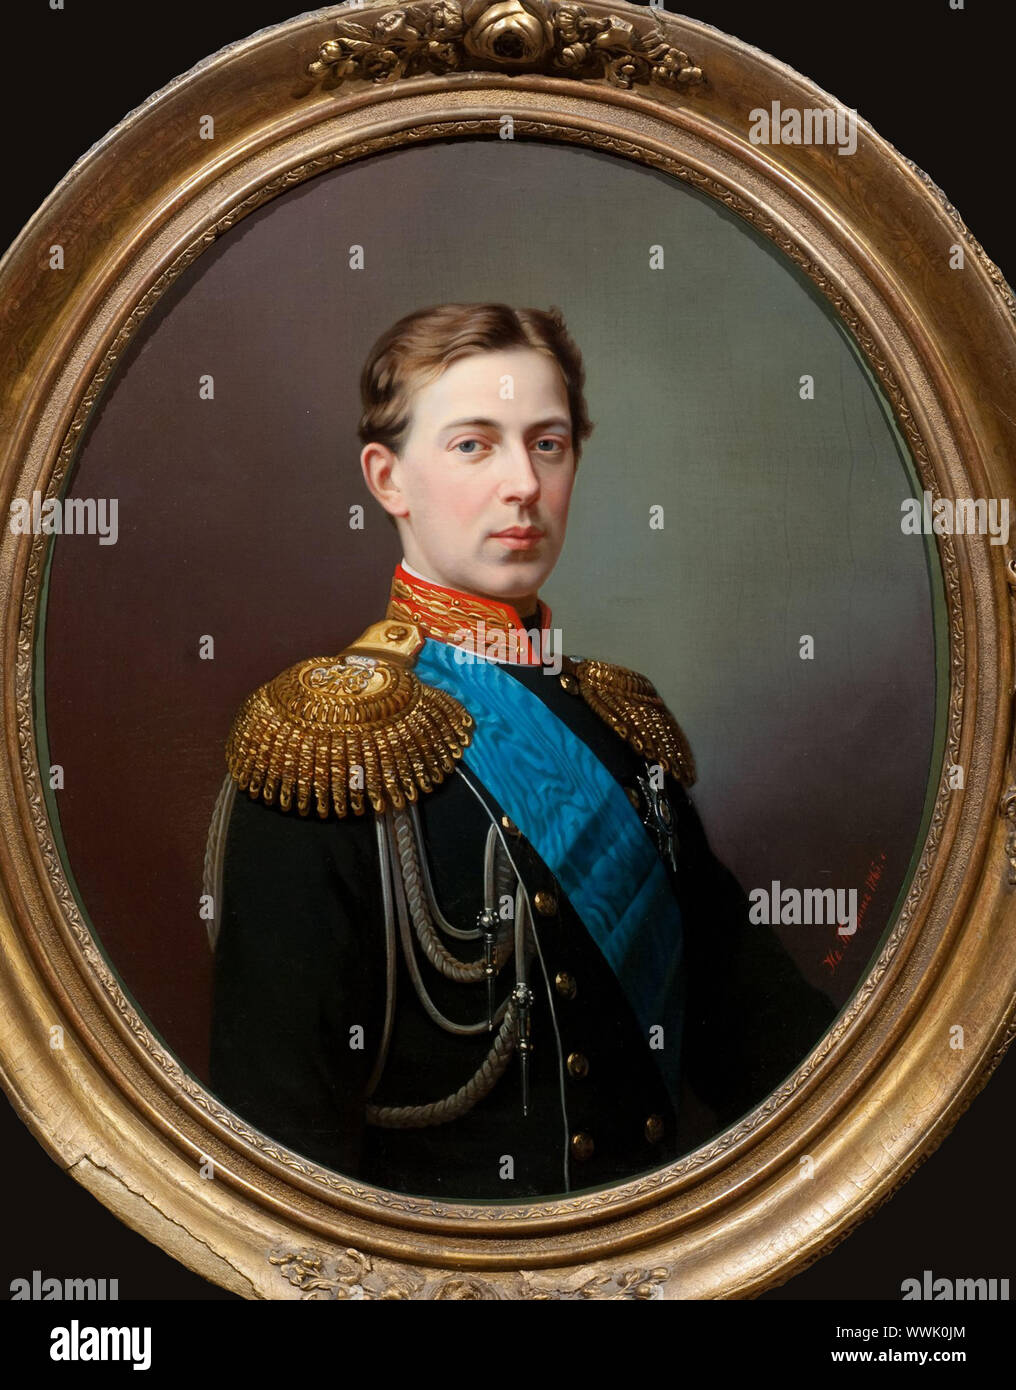 Portrait of Tsarevich Nicholas Alexandrovich of Russia (1843-1865), 1865. Found in the Collection of State History Museum, Moscow. Stock Photo